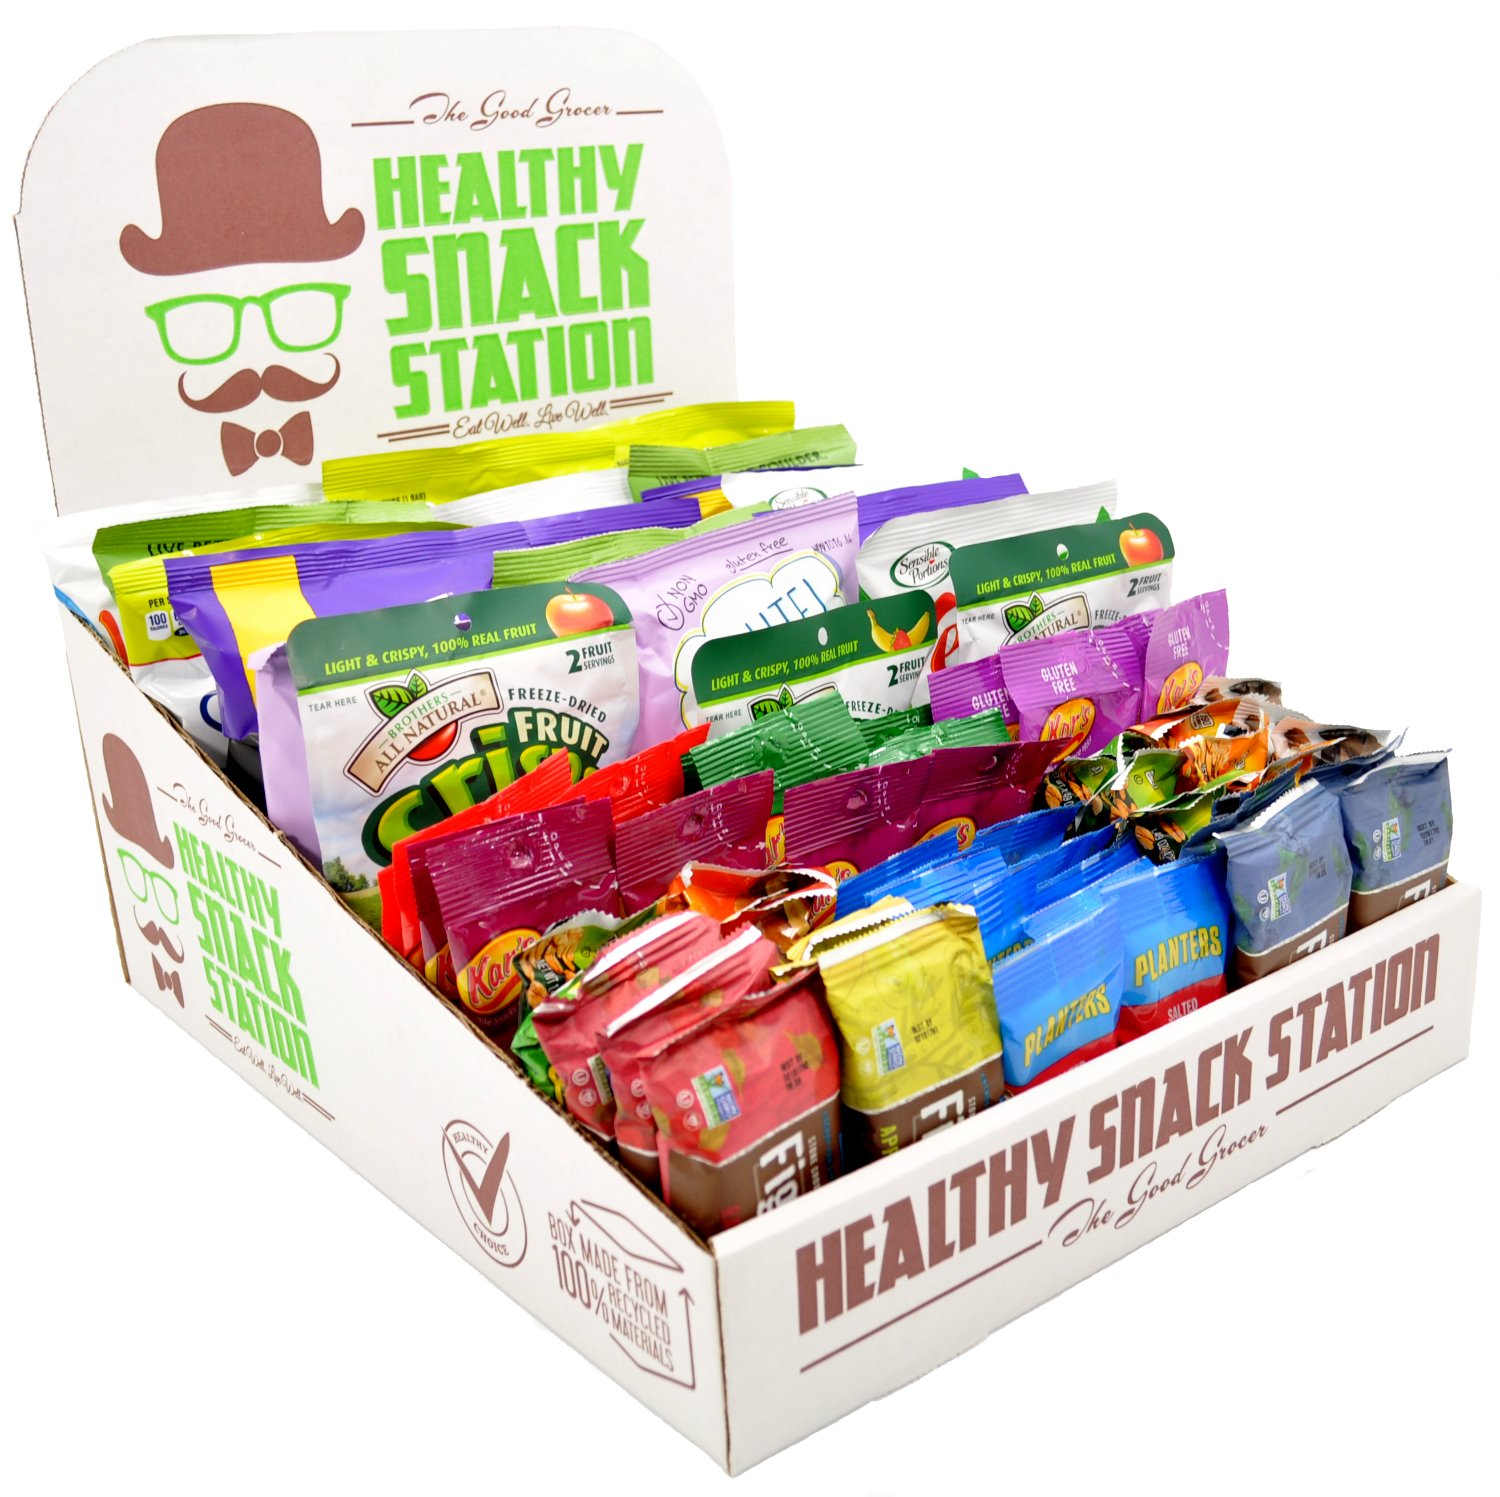 Healthy Snack Station (70 Count) by The Good Grocer - Office Snacks, School Lunches, Variety Pack (Includes Display Box)